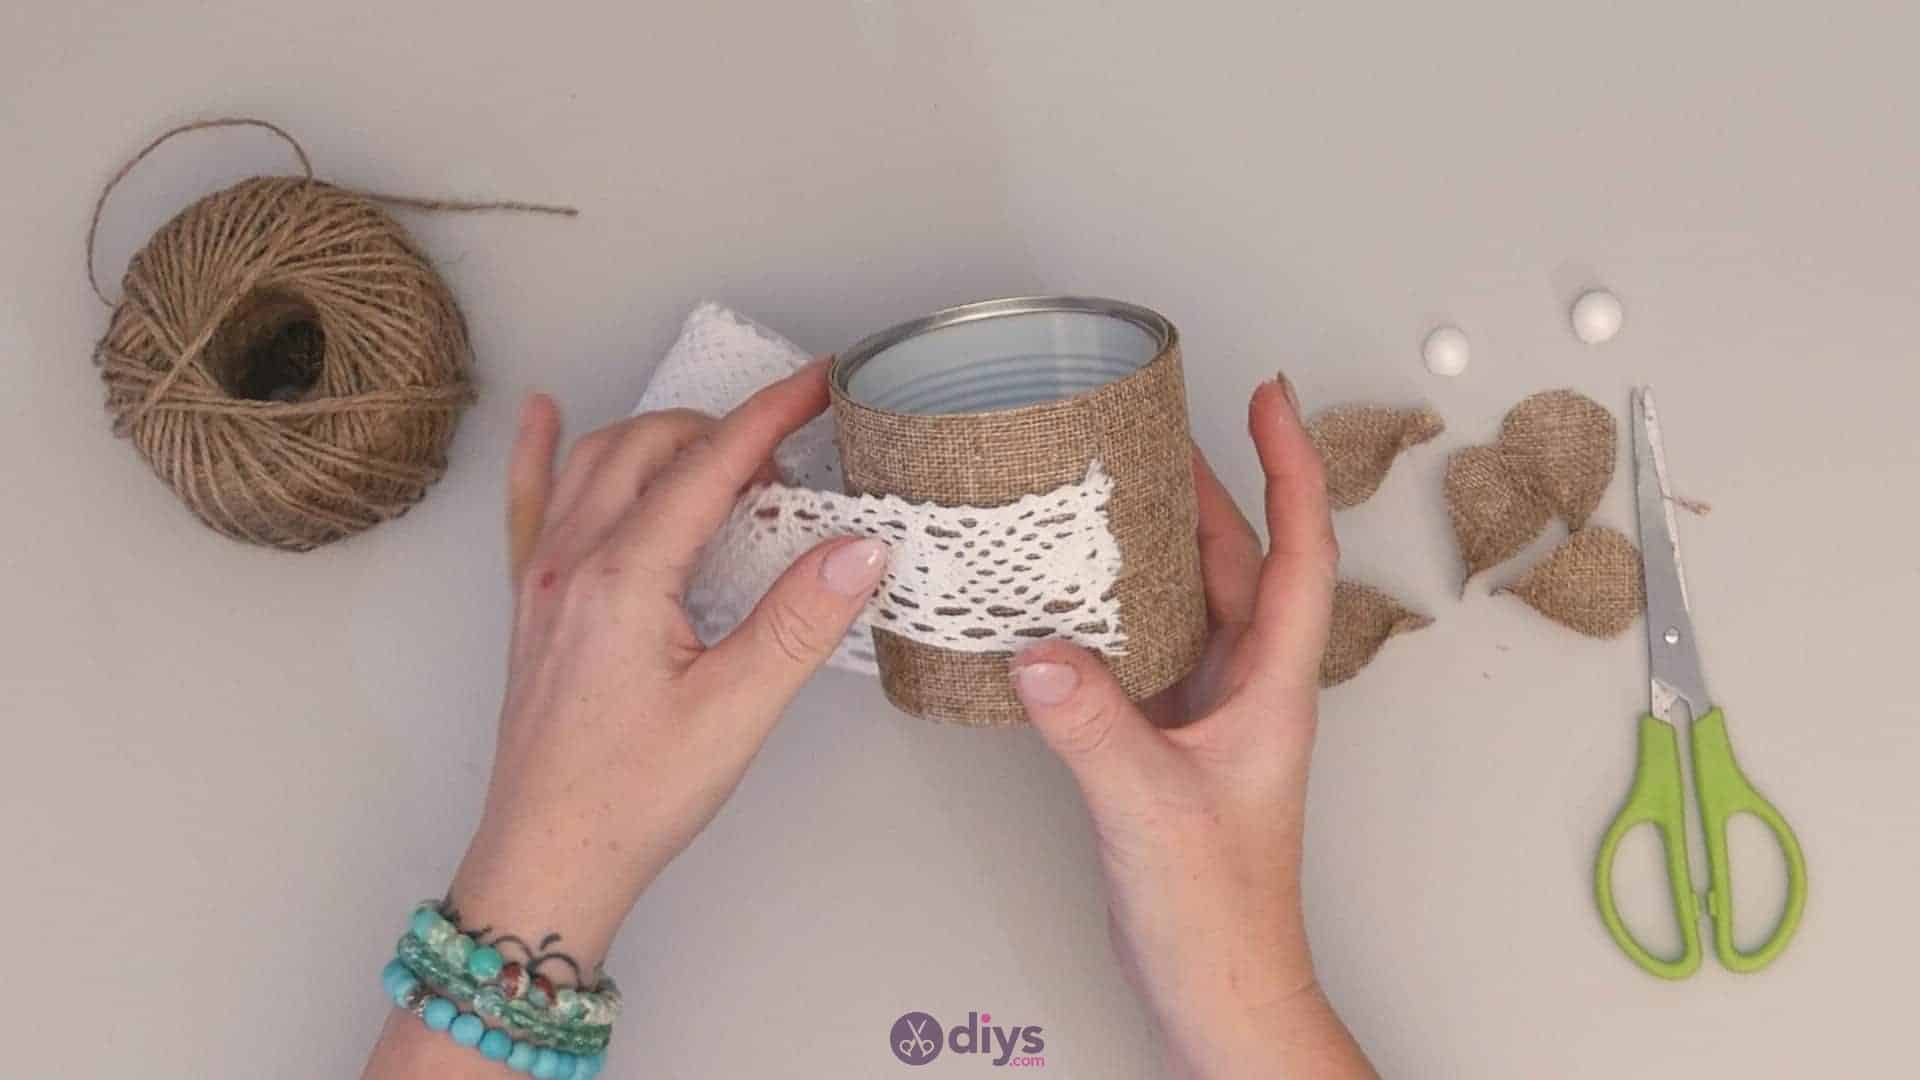 Diy rustic tin can container step 6a